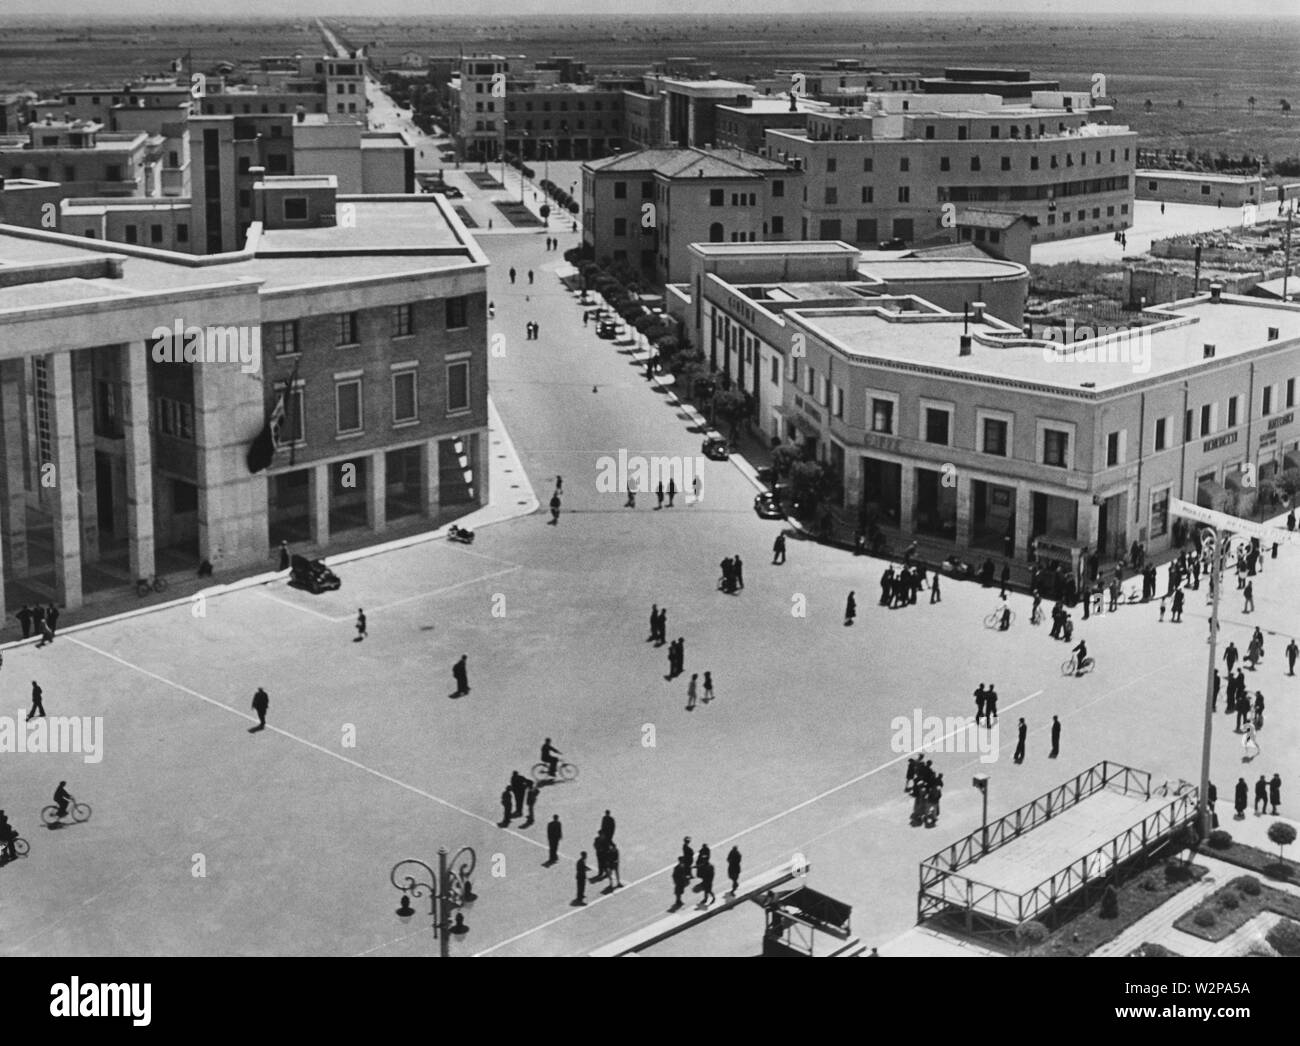 lazio, view of littoria from the civic tower, 1920-30 - Stock Image